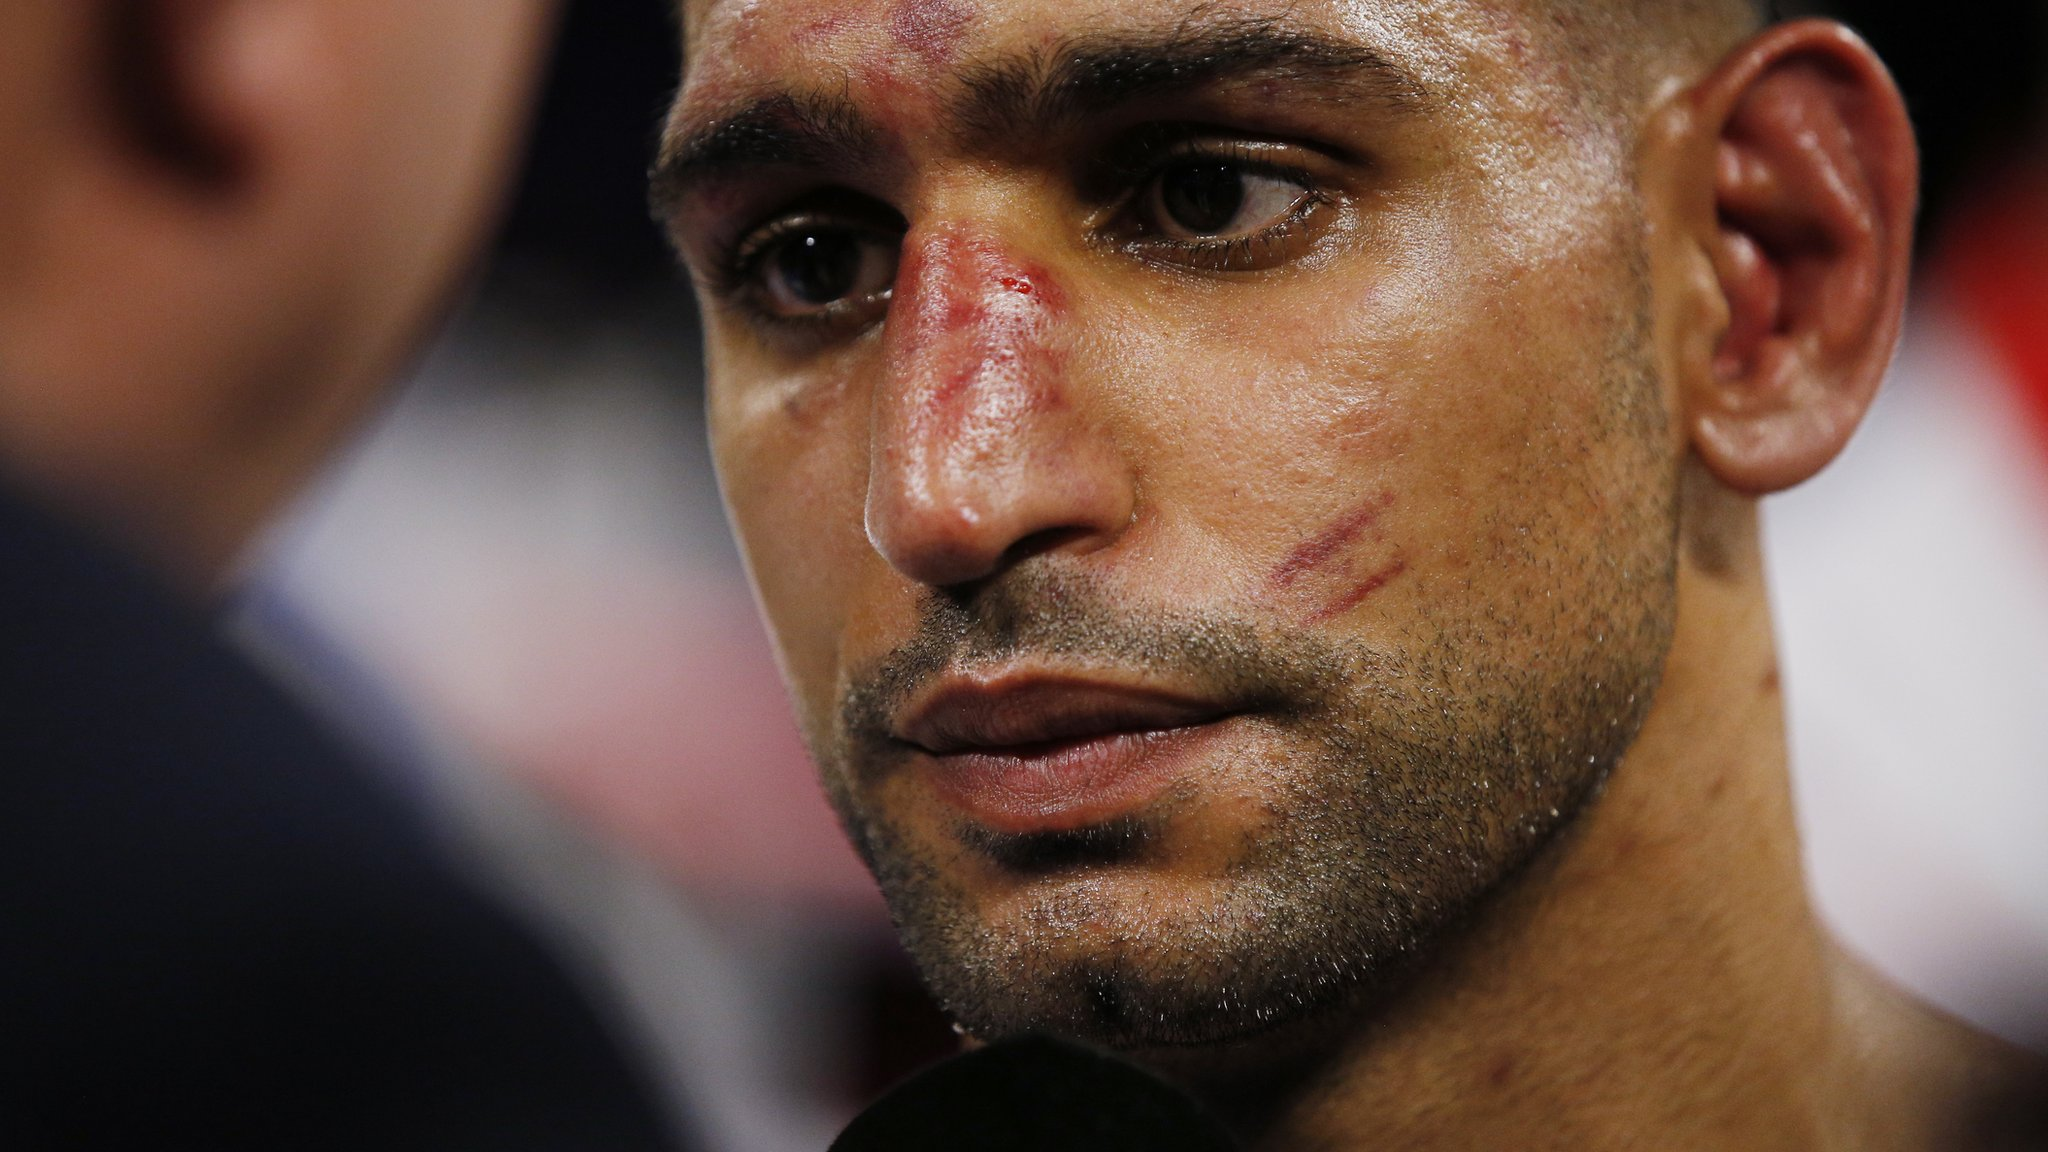 This will not be my last fight, says beaten Khan